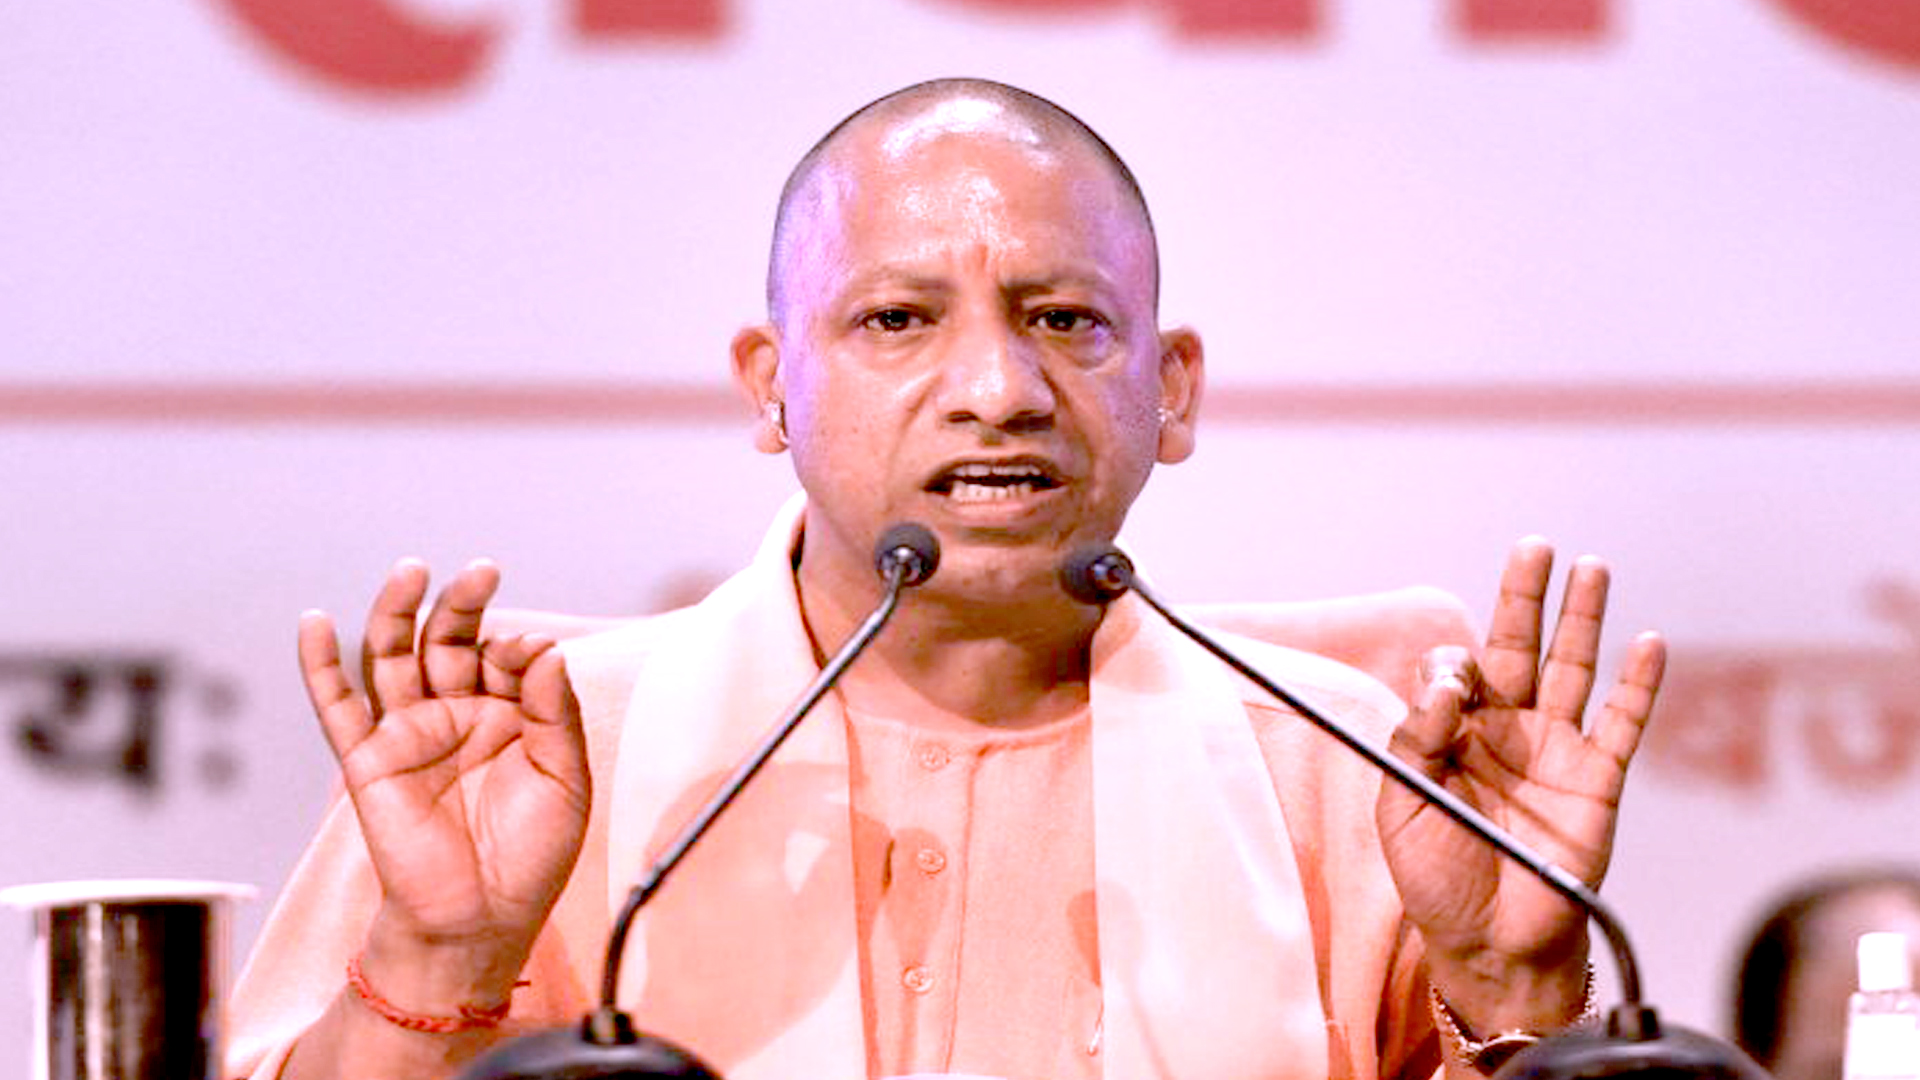 CM Yogi Adityanath is All Set to Promote and Empower Sanskrit